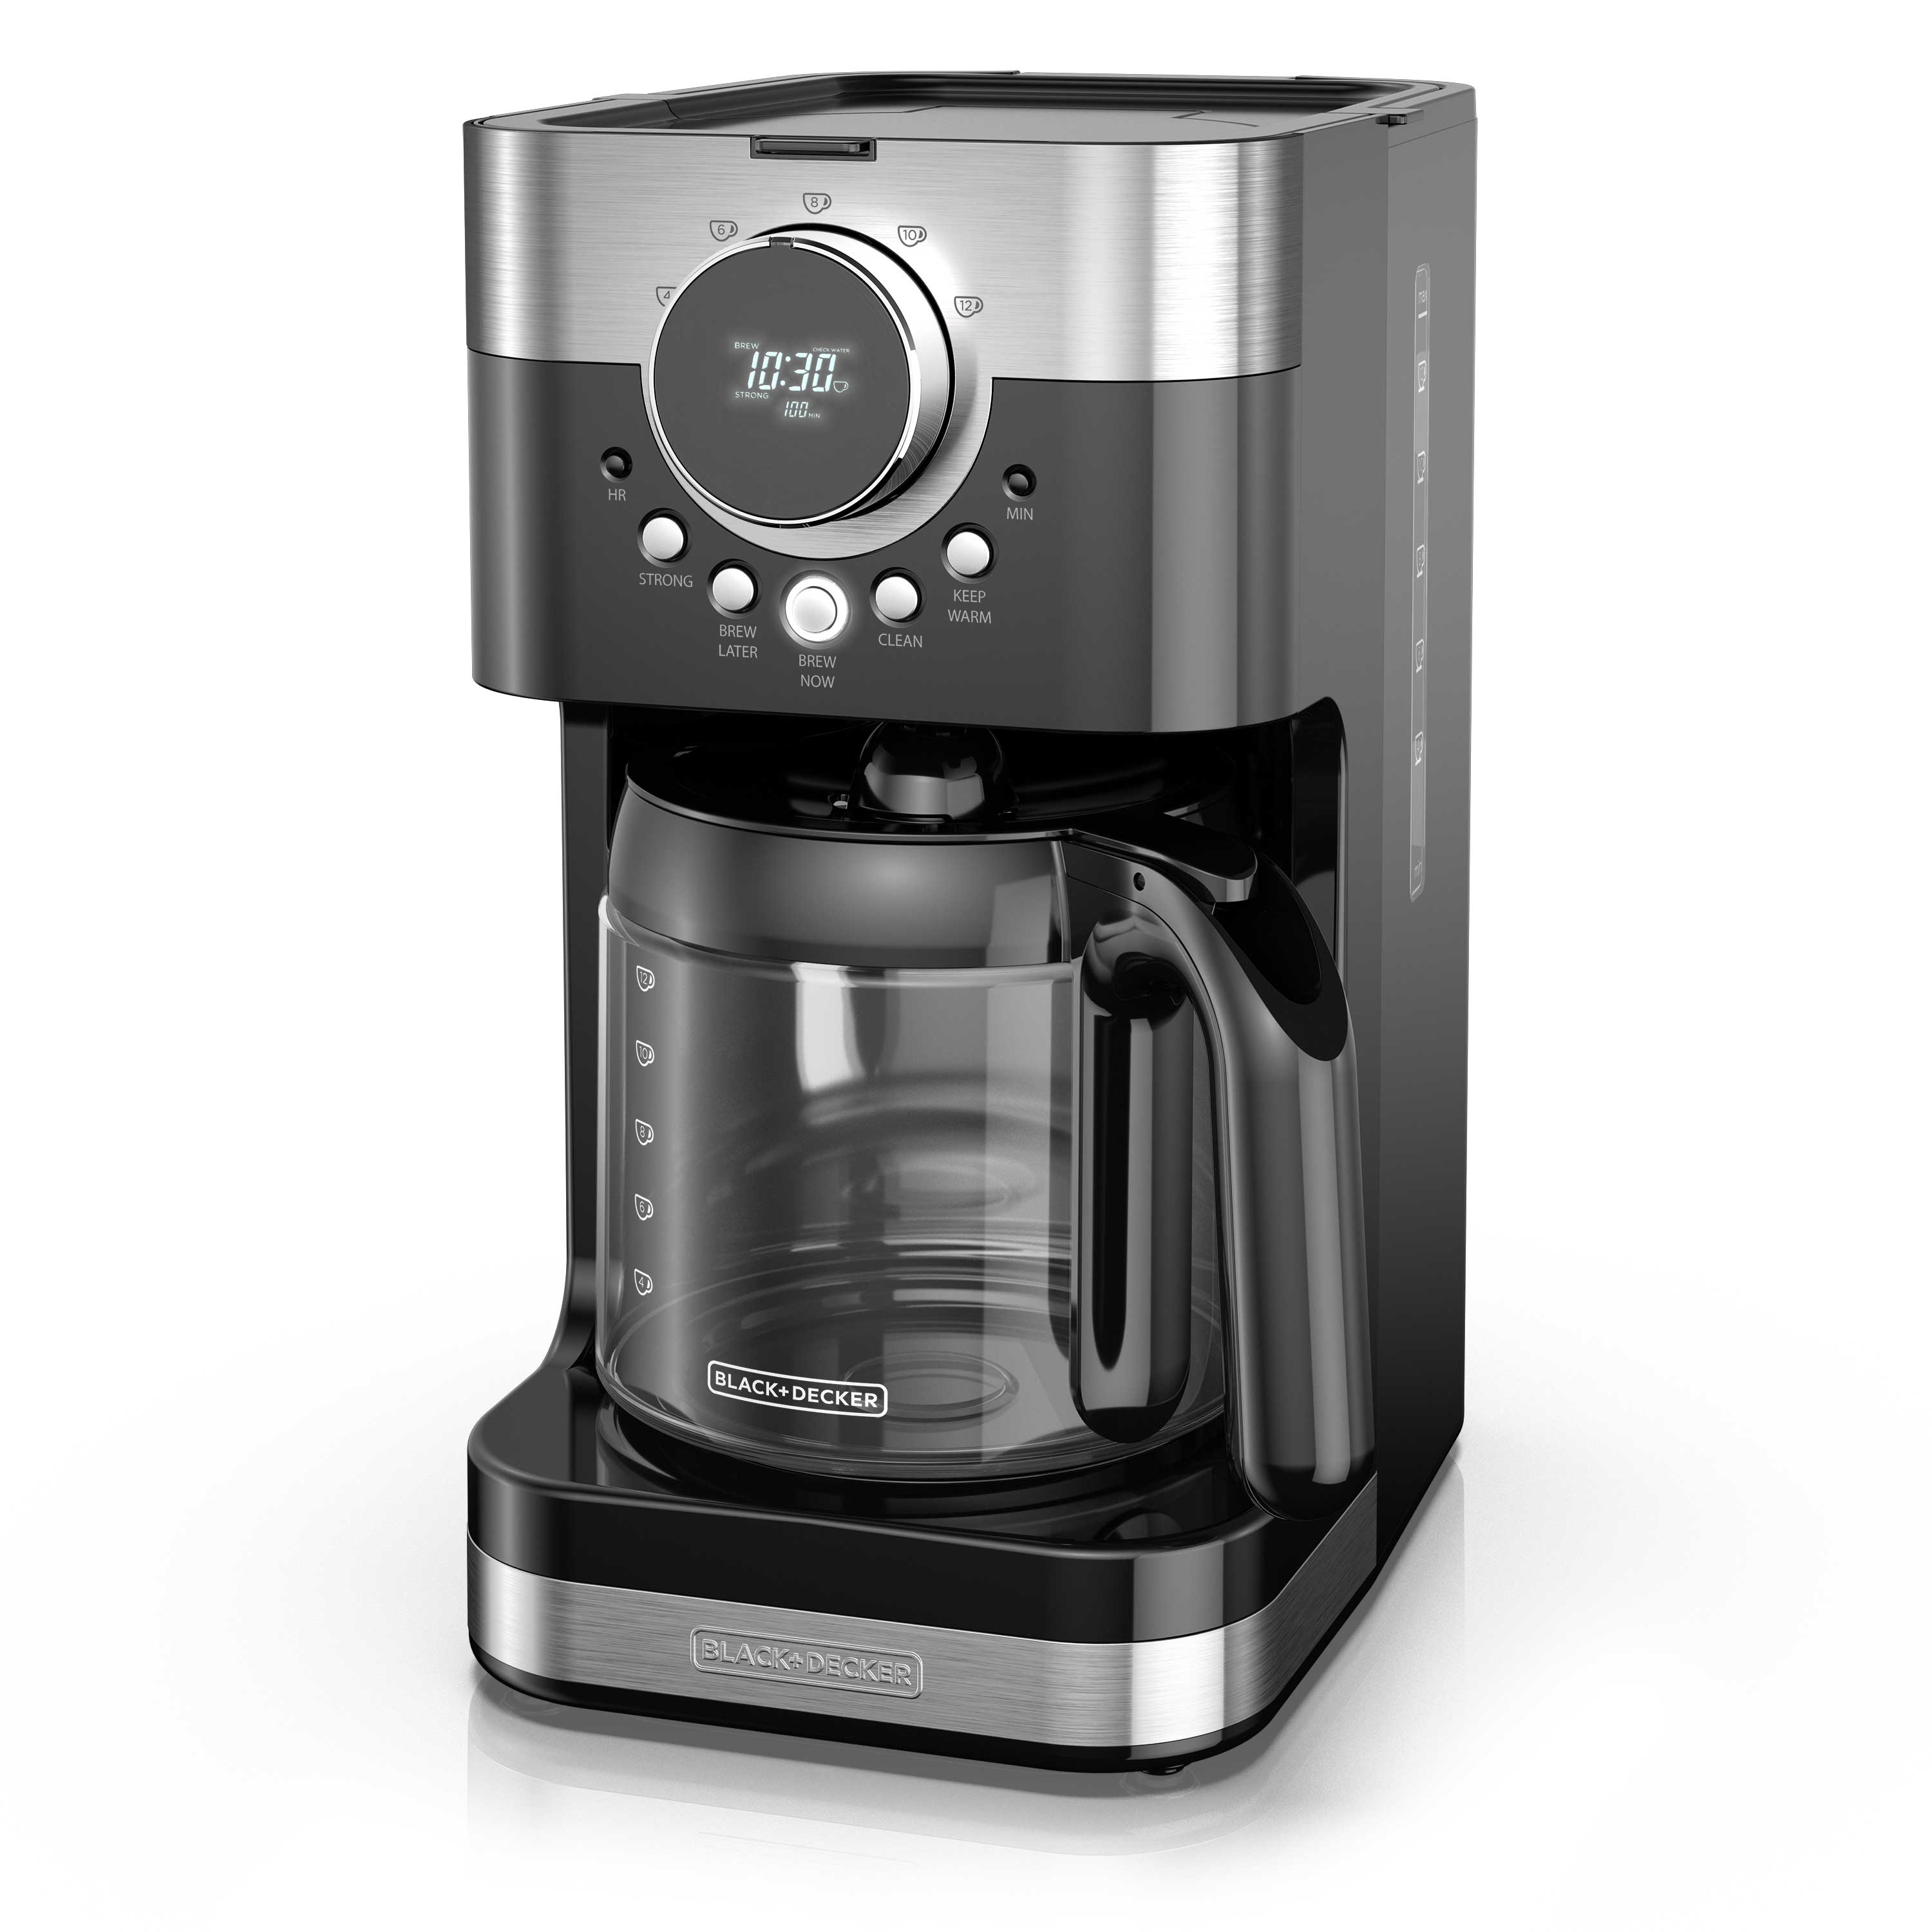 Blackdecker Select A Size Easy Dial Programmable Coffee Maker